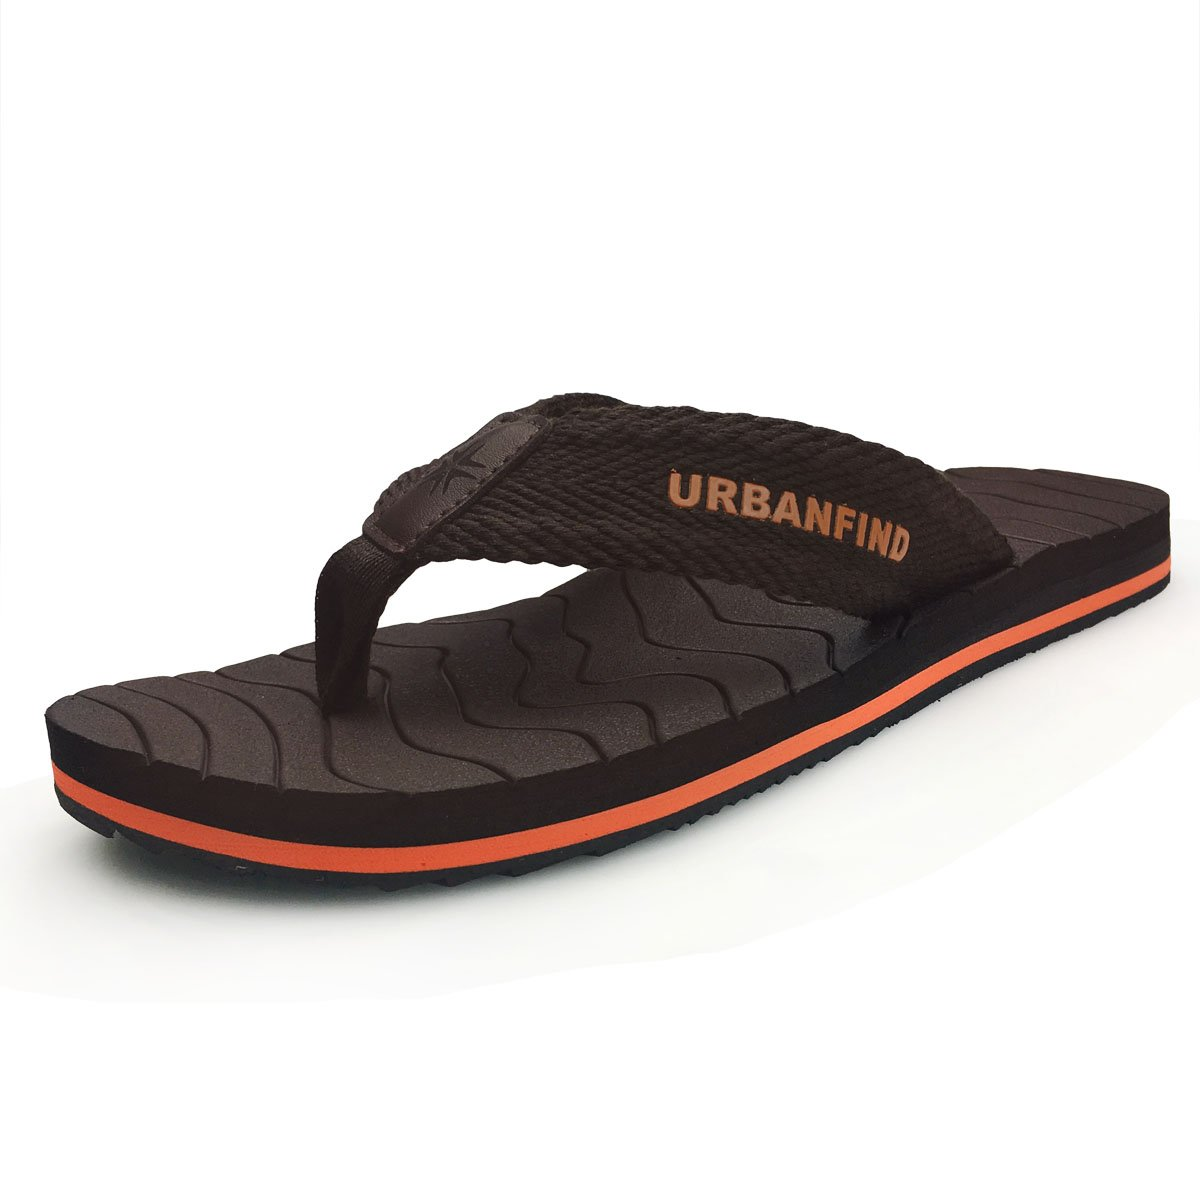 URBANFIND Men's Thongs Flip Flop Sandals Comfortable Athletic Arch Support Beach Shower Slippers Weave Brown, 8 D(M) US